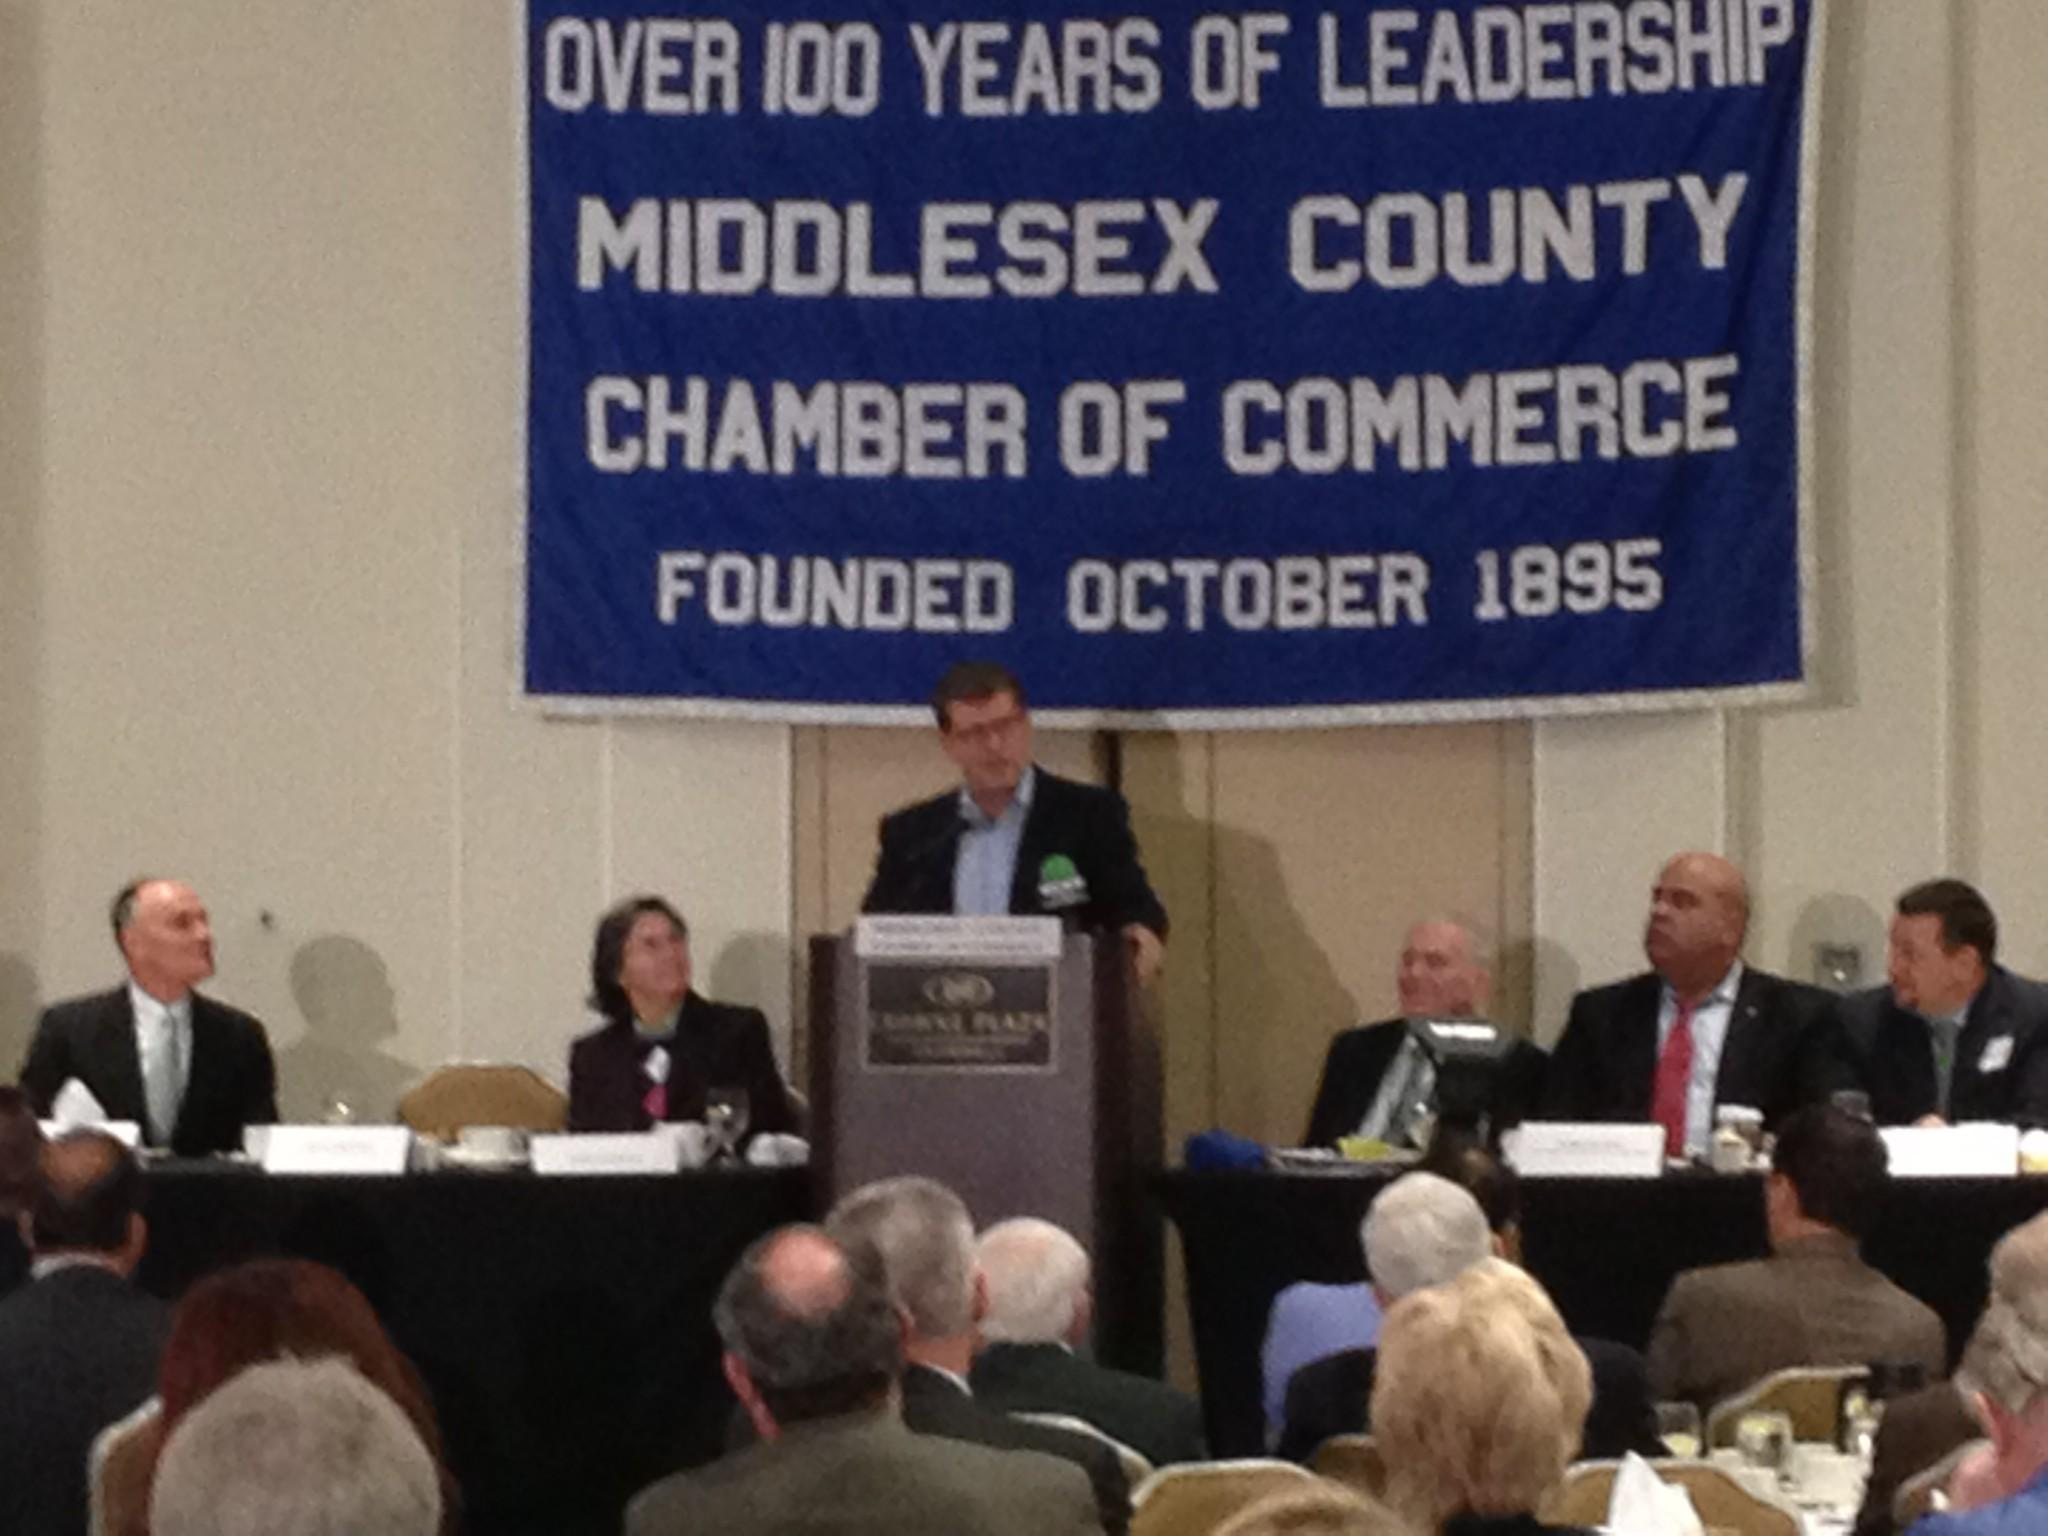 Geno Auriemma speaks at the Middlesex County Chamber of Commerce breakfast on Monday.